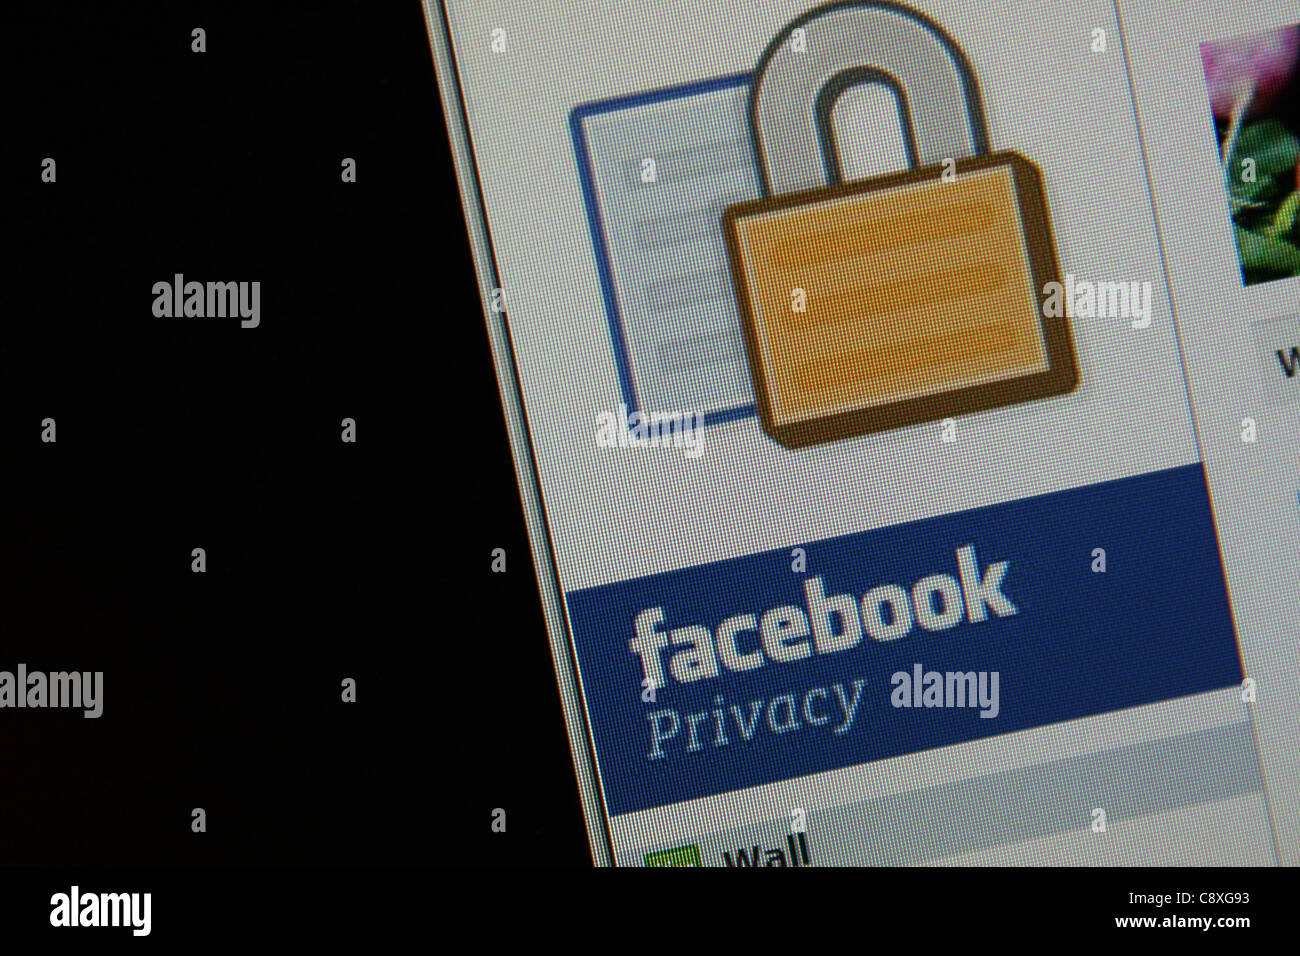 facebook privacy online - Stock Image